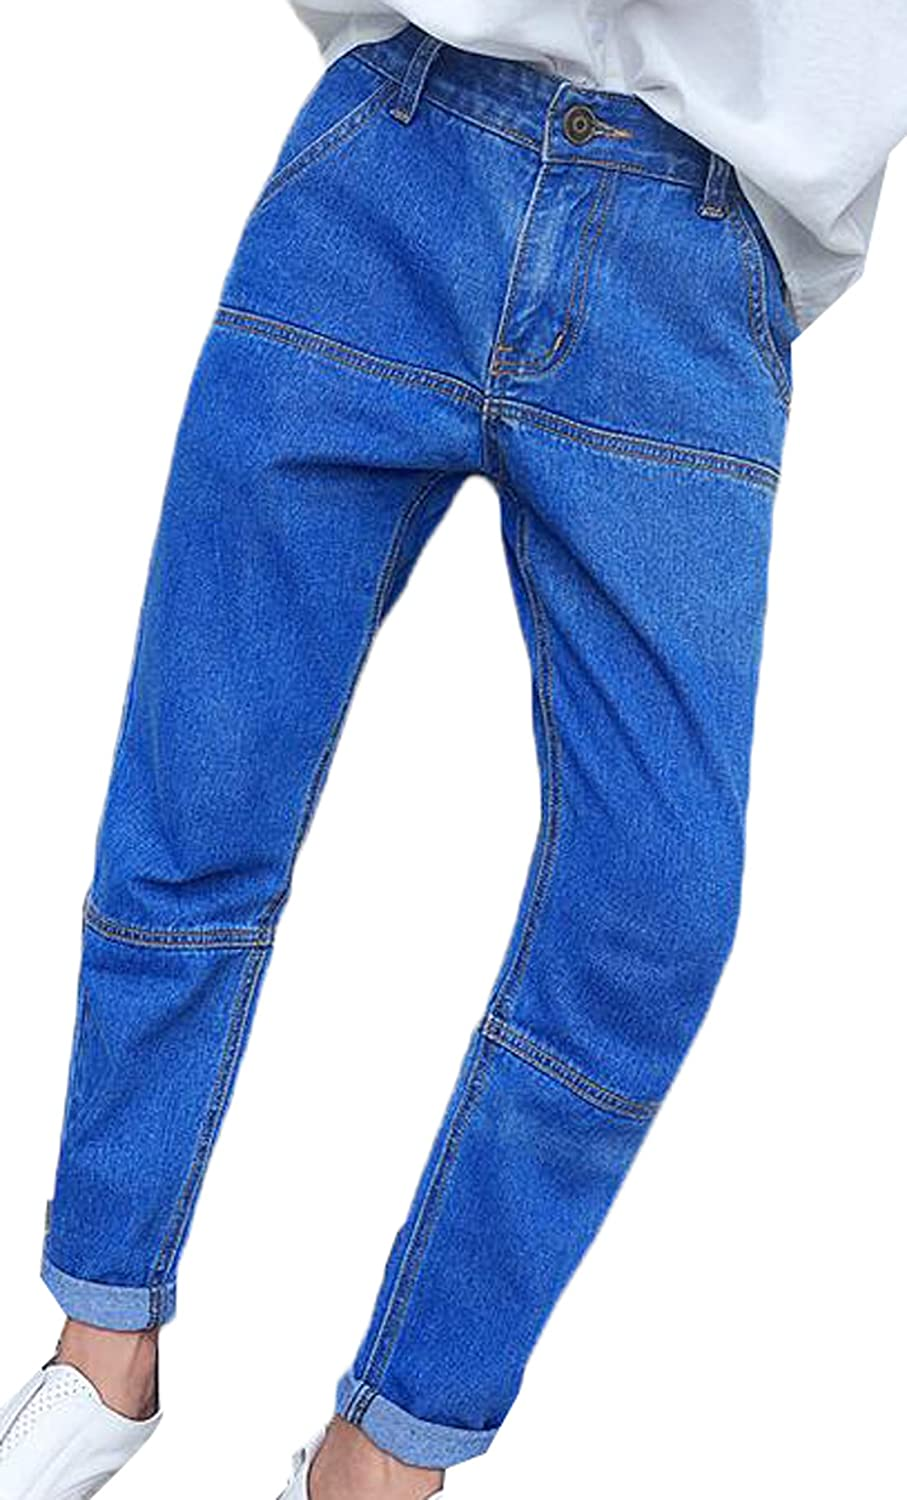 DDK Mens Premium Select Classic Fit Straight Leg Jean